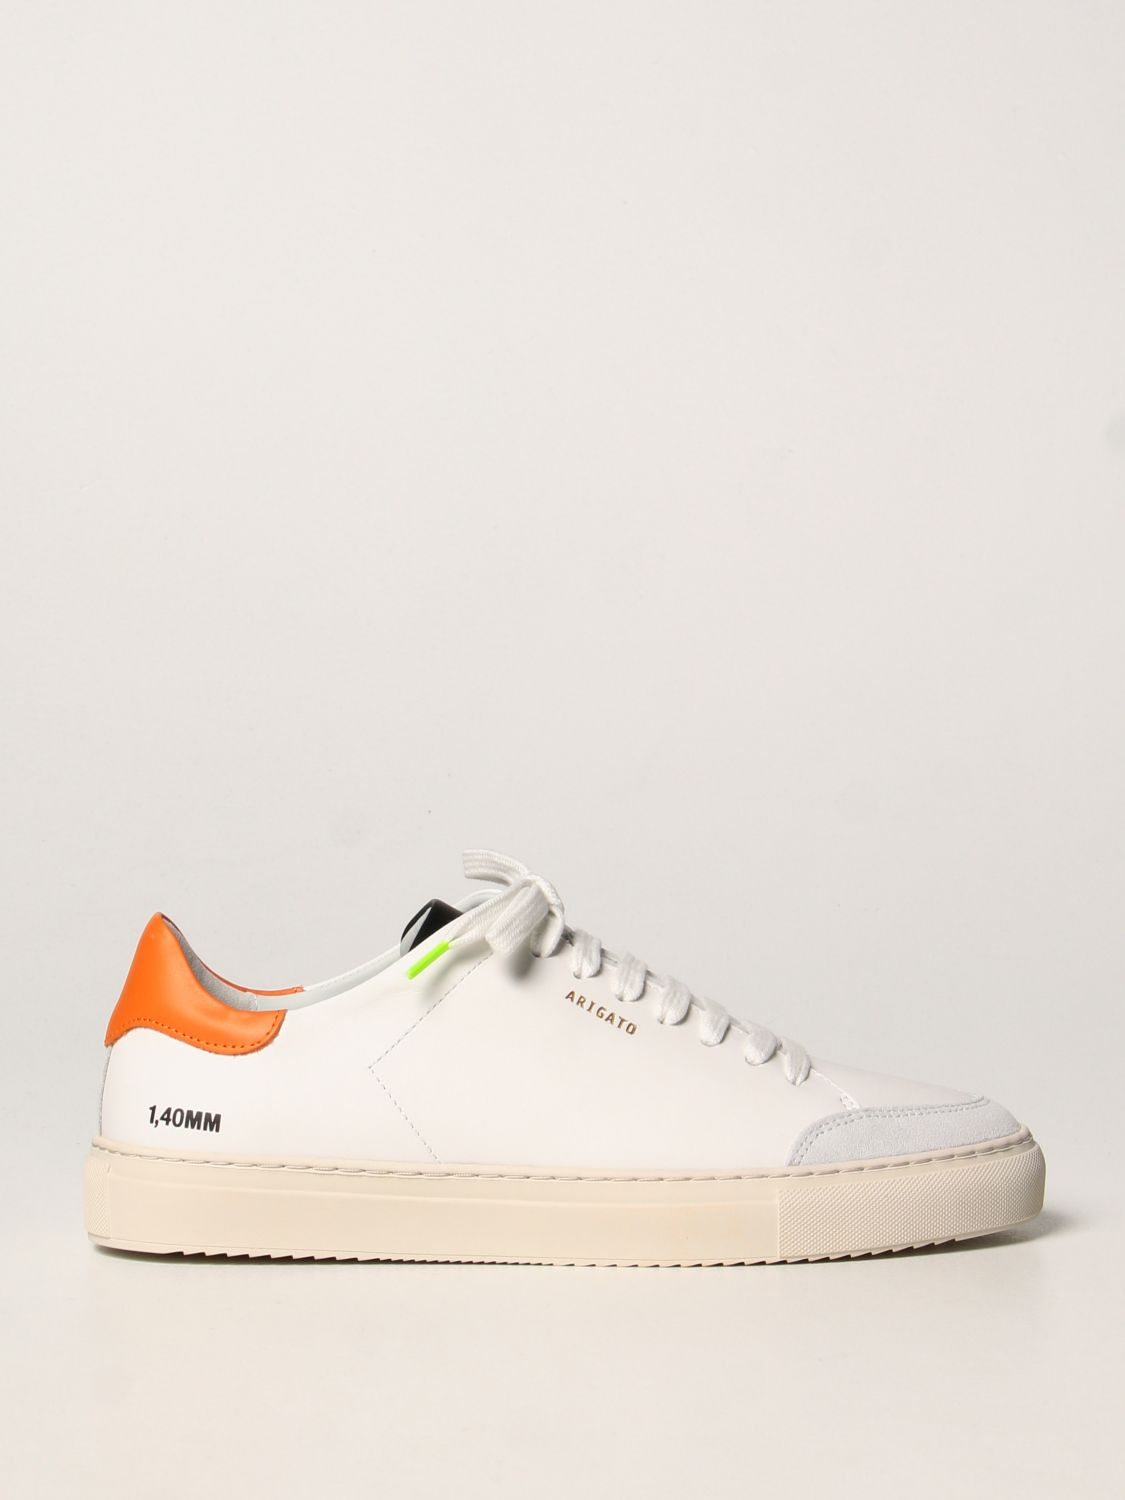 Trainers Axel Arigato: Axel Arigato sneakers in leather with logo orange 1